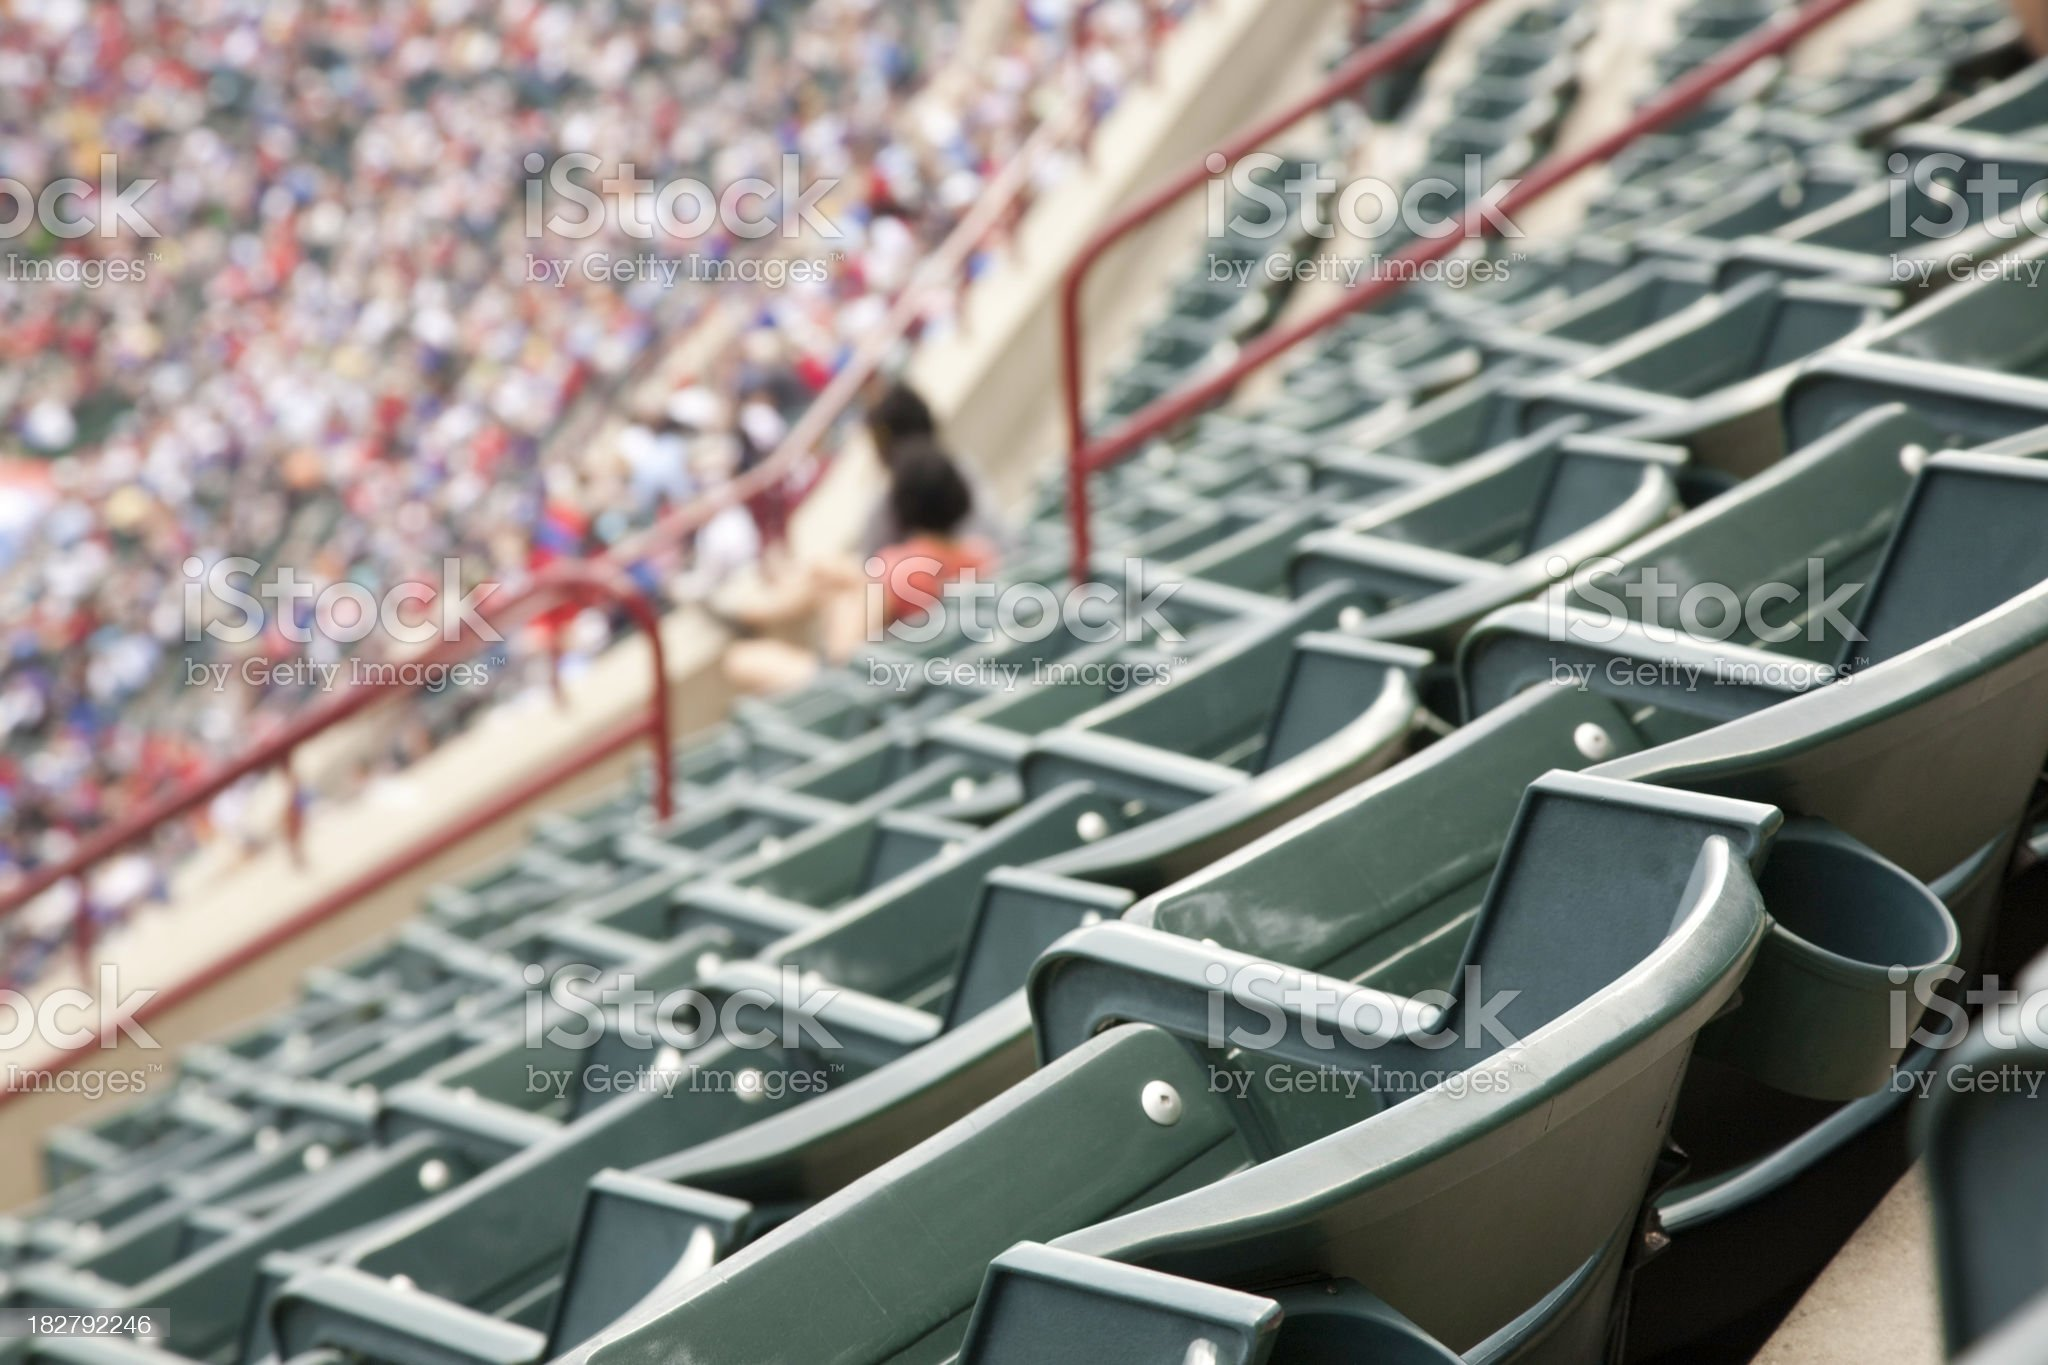 Empty Seats in Upper Deck at a Sporting Event royalty-free stock photo